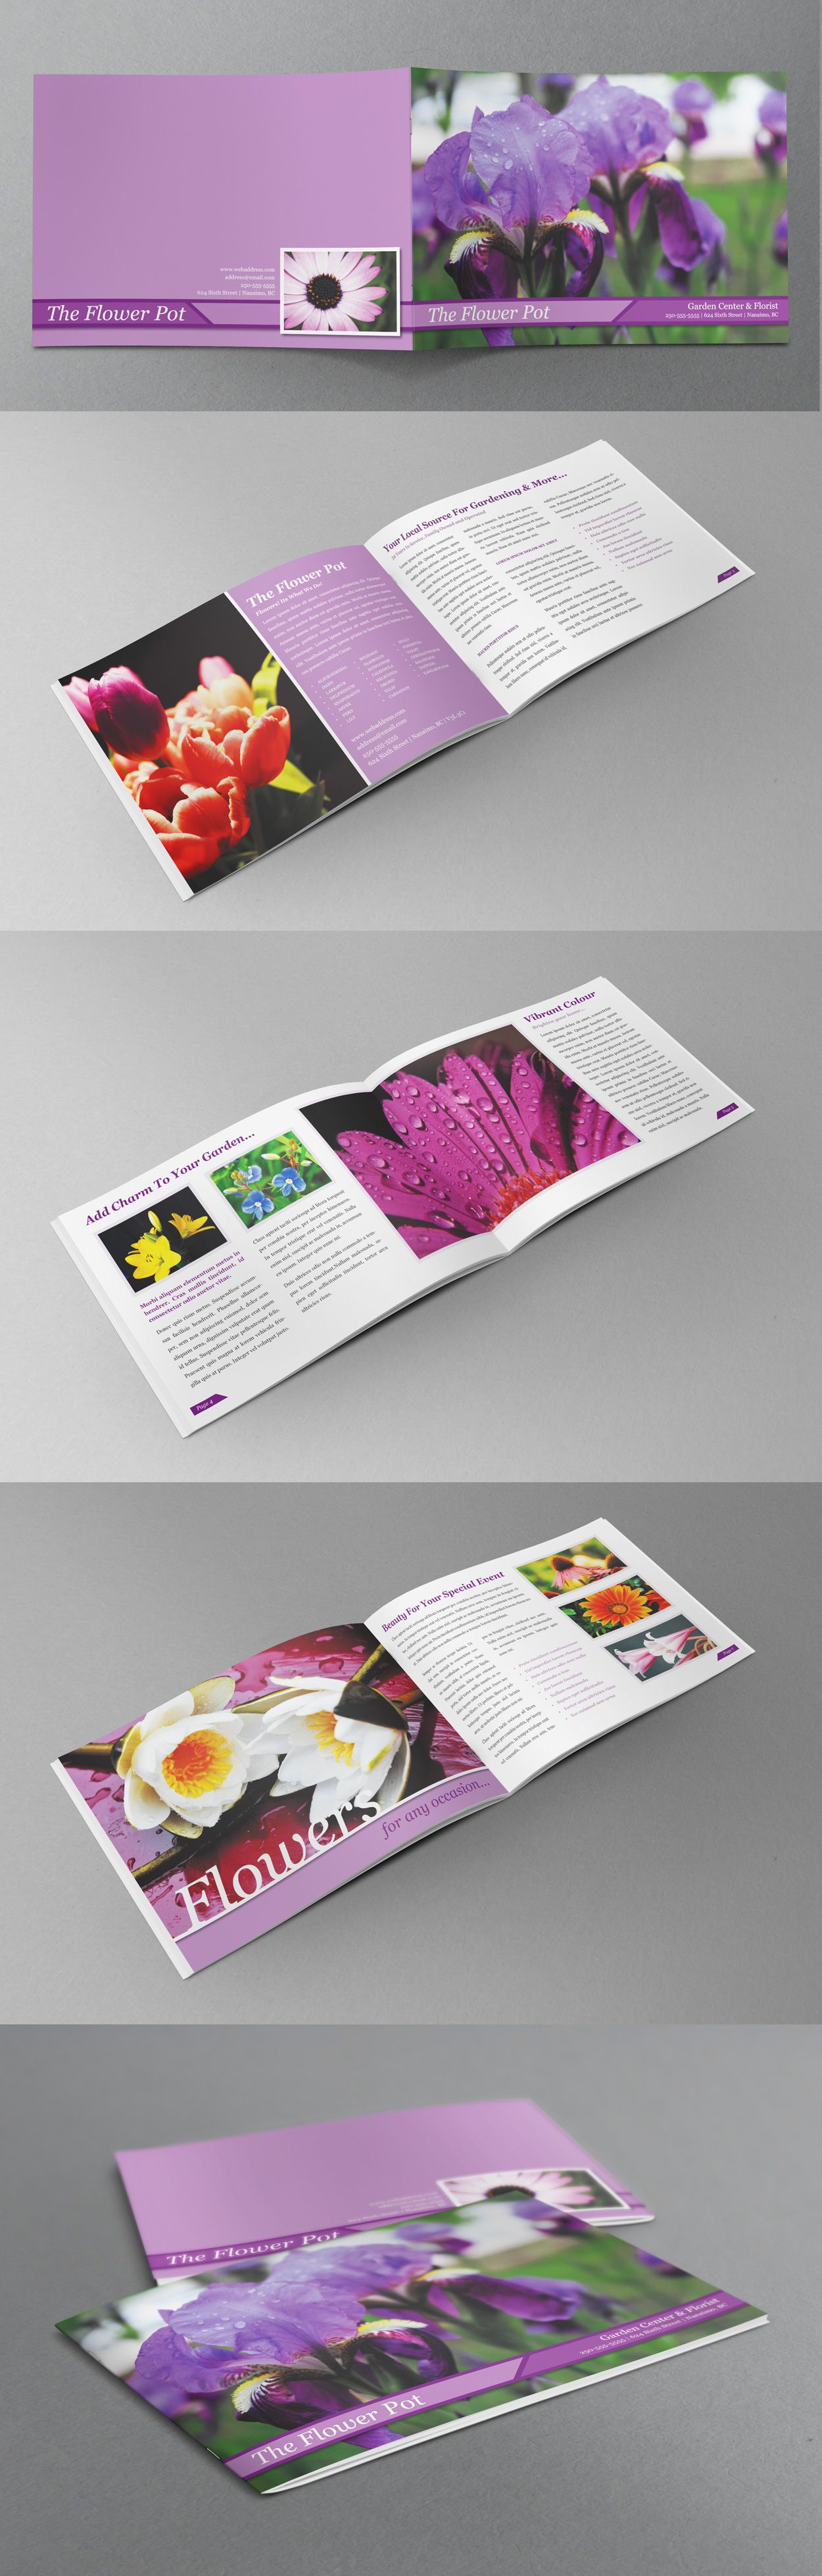 Booklet Template Indesign Cs4cs5 Free Download A4 Page